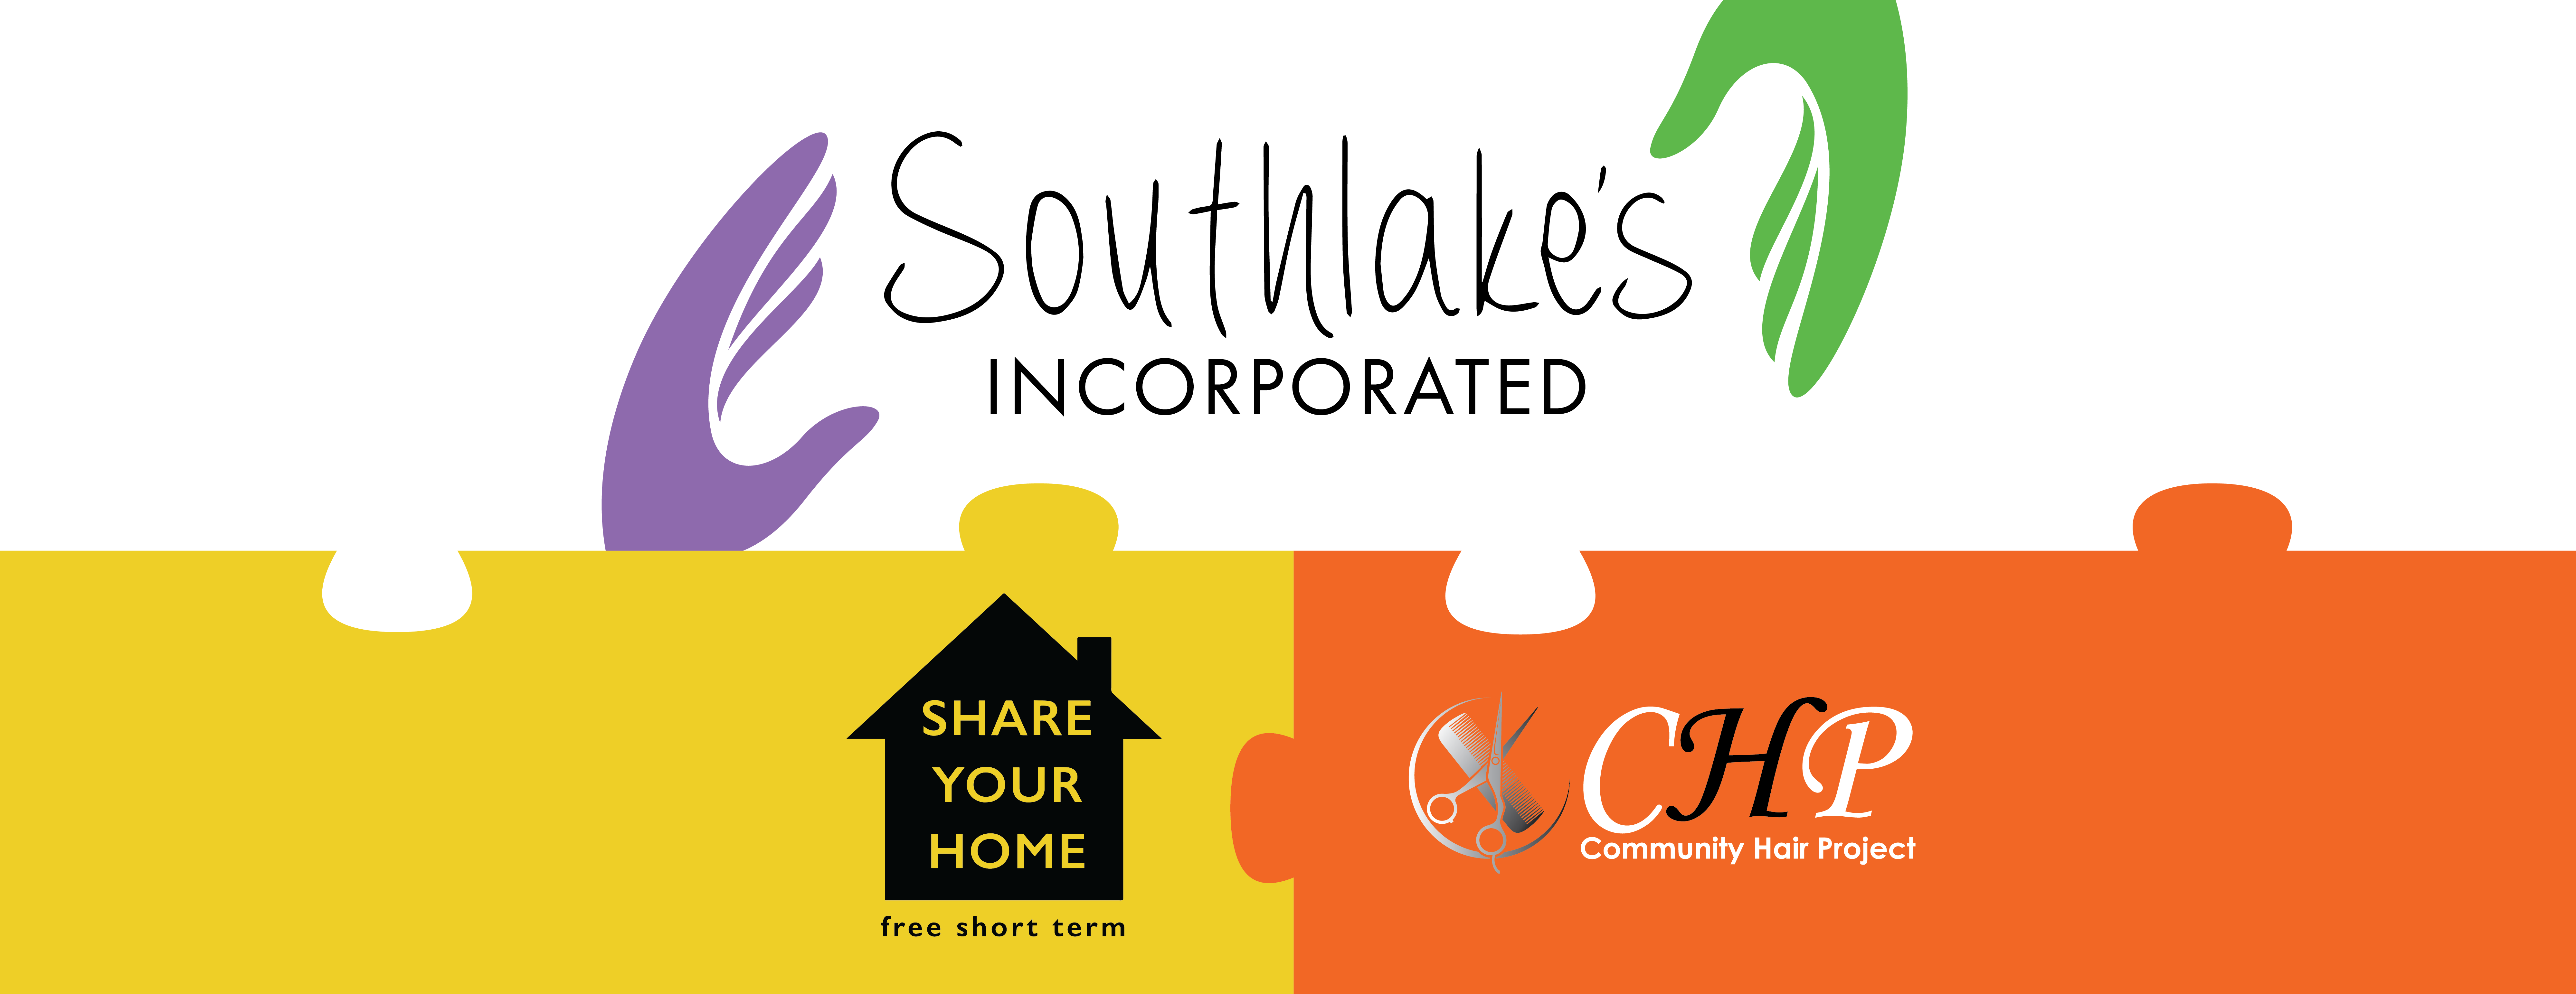 Southlakes Website Banner 01 1